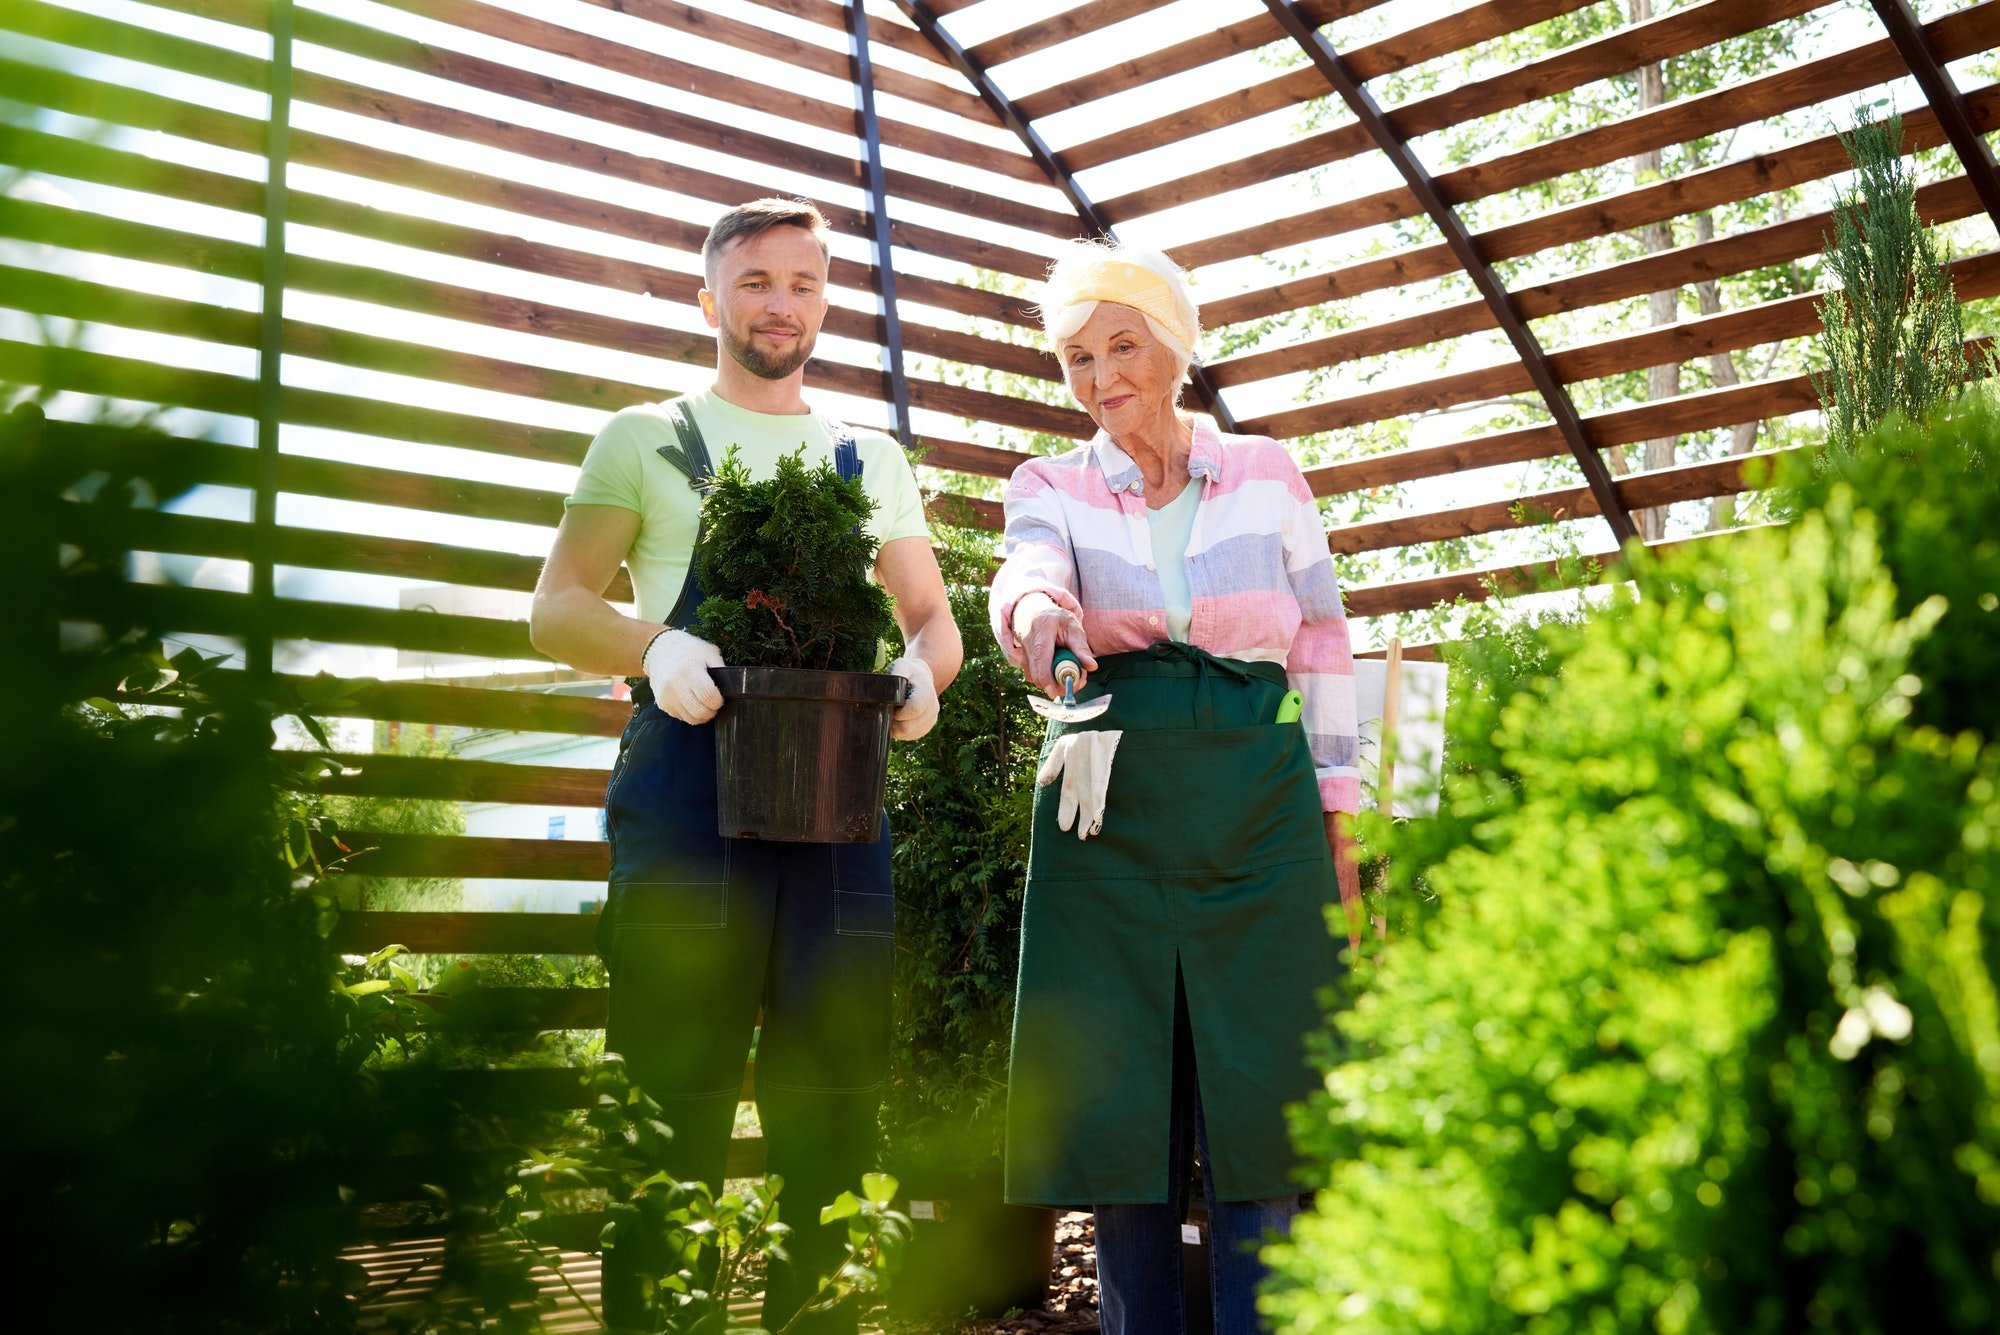 Two Gardeners in Botanical Greenhouse